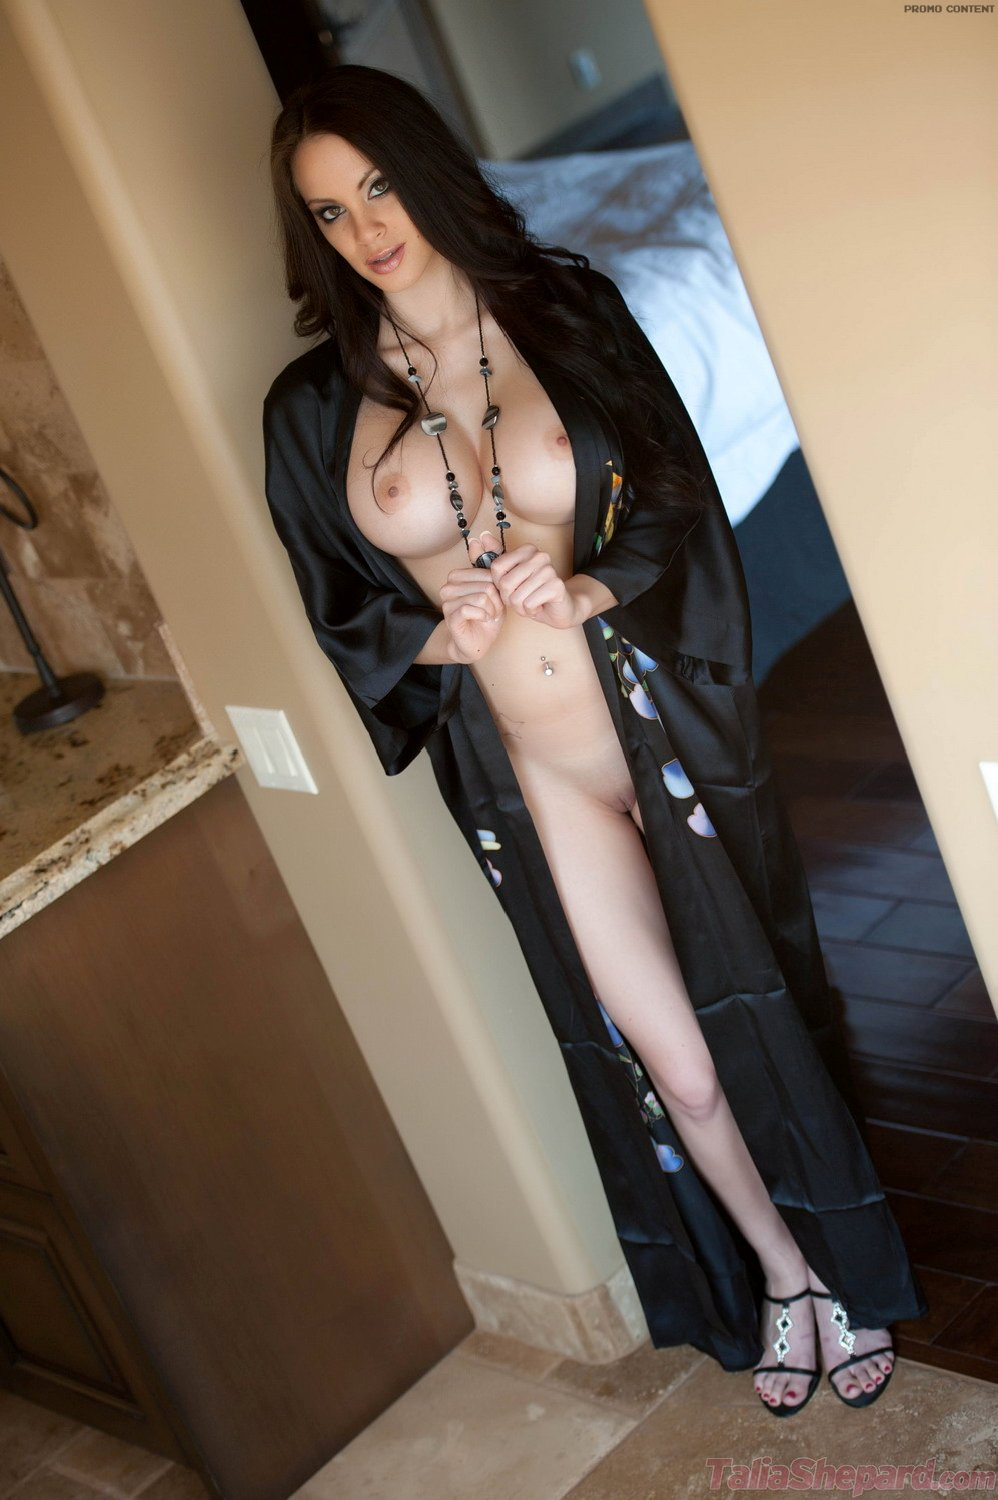 girl in robe naked